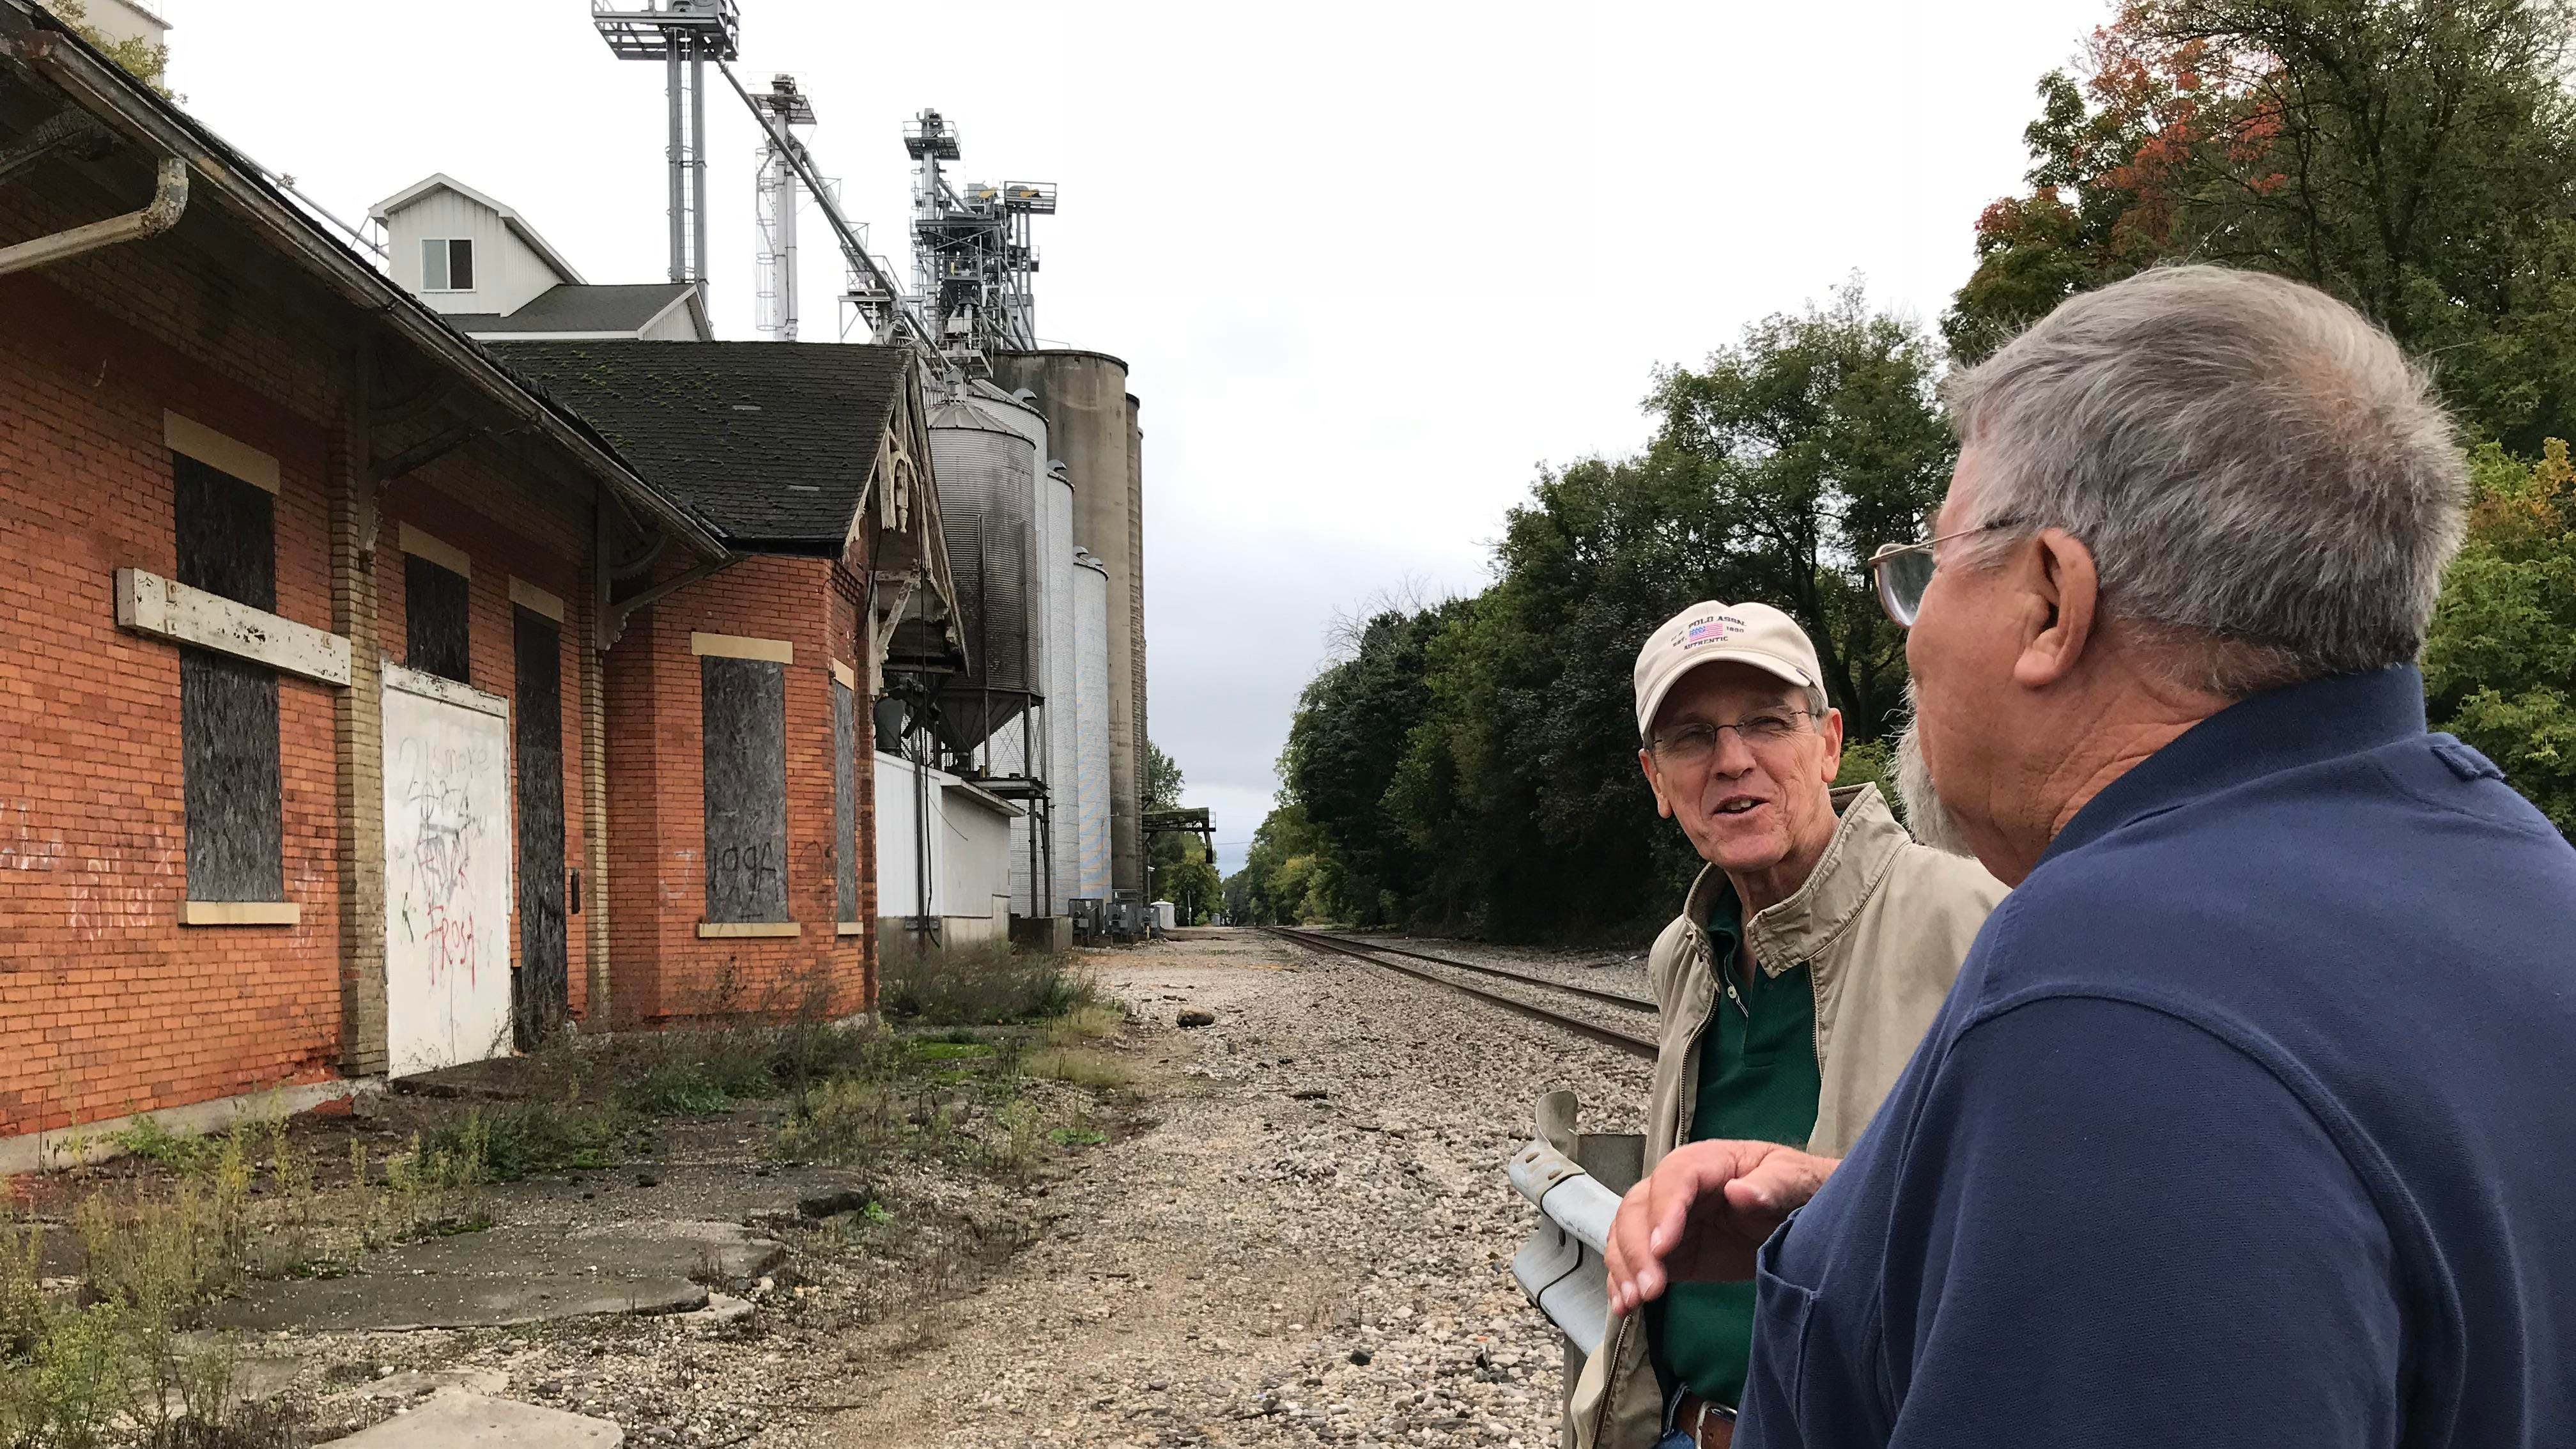 Can Charlotte save this century-old train station from ruin?